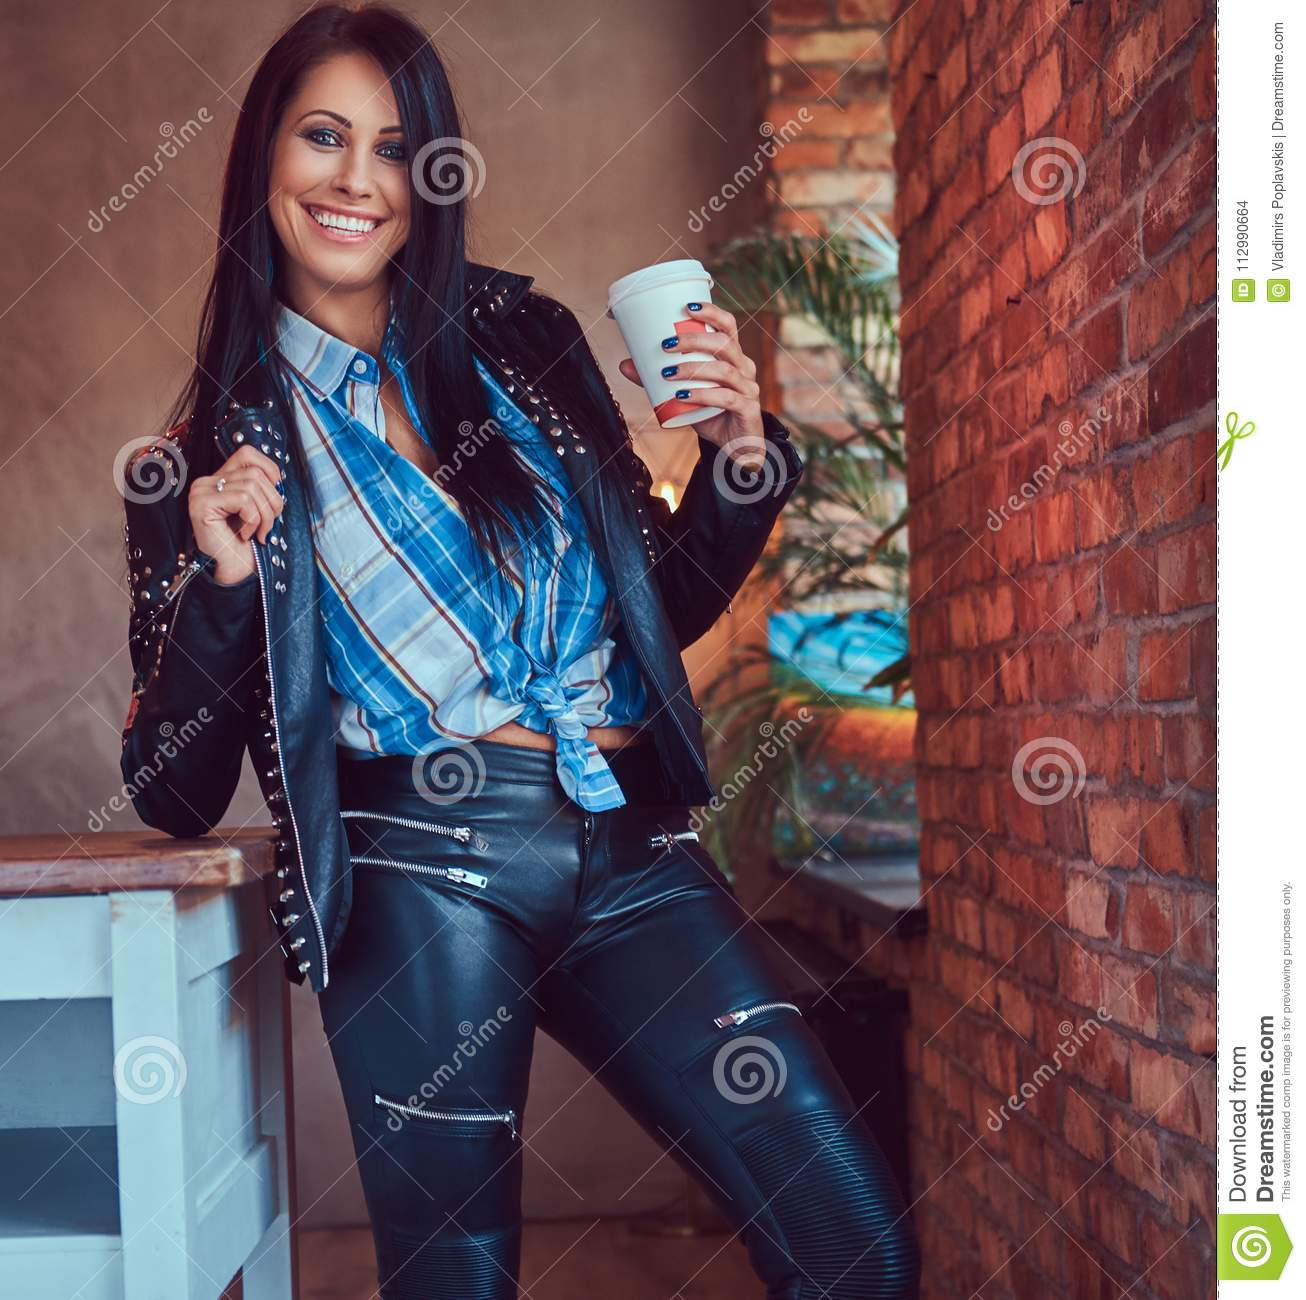 Portrait of a smiling sensual brunette posing in a stylish leather jacket and jeans leaning on a table holds a cup